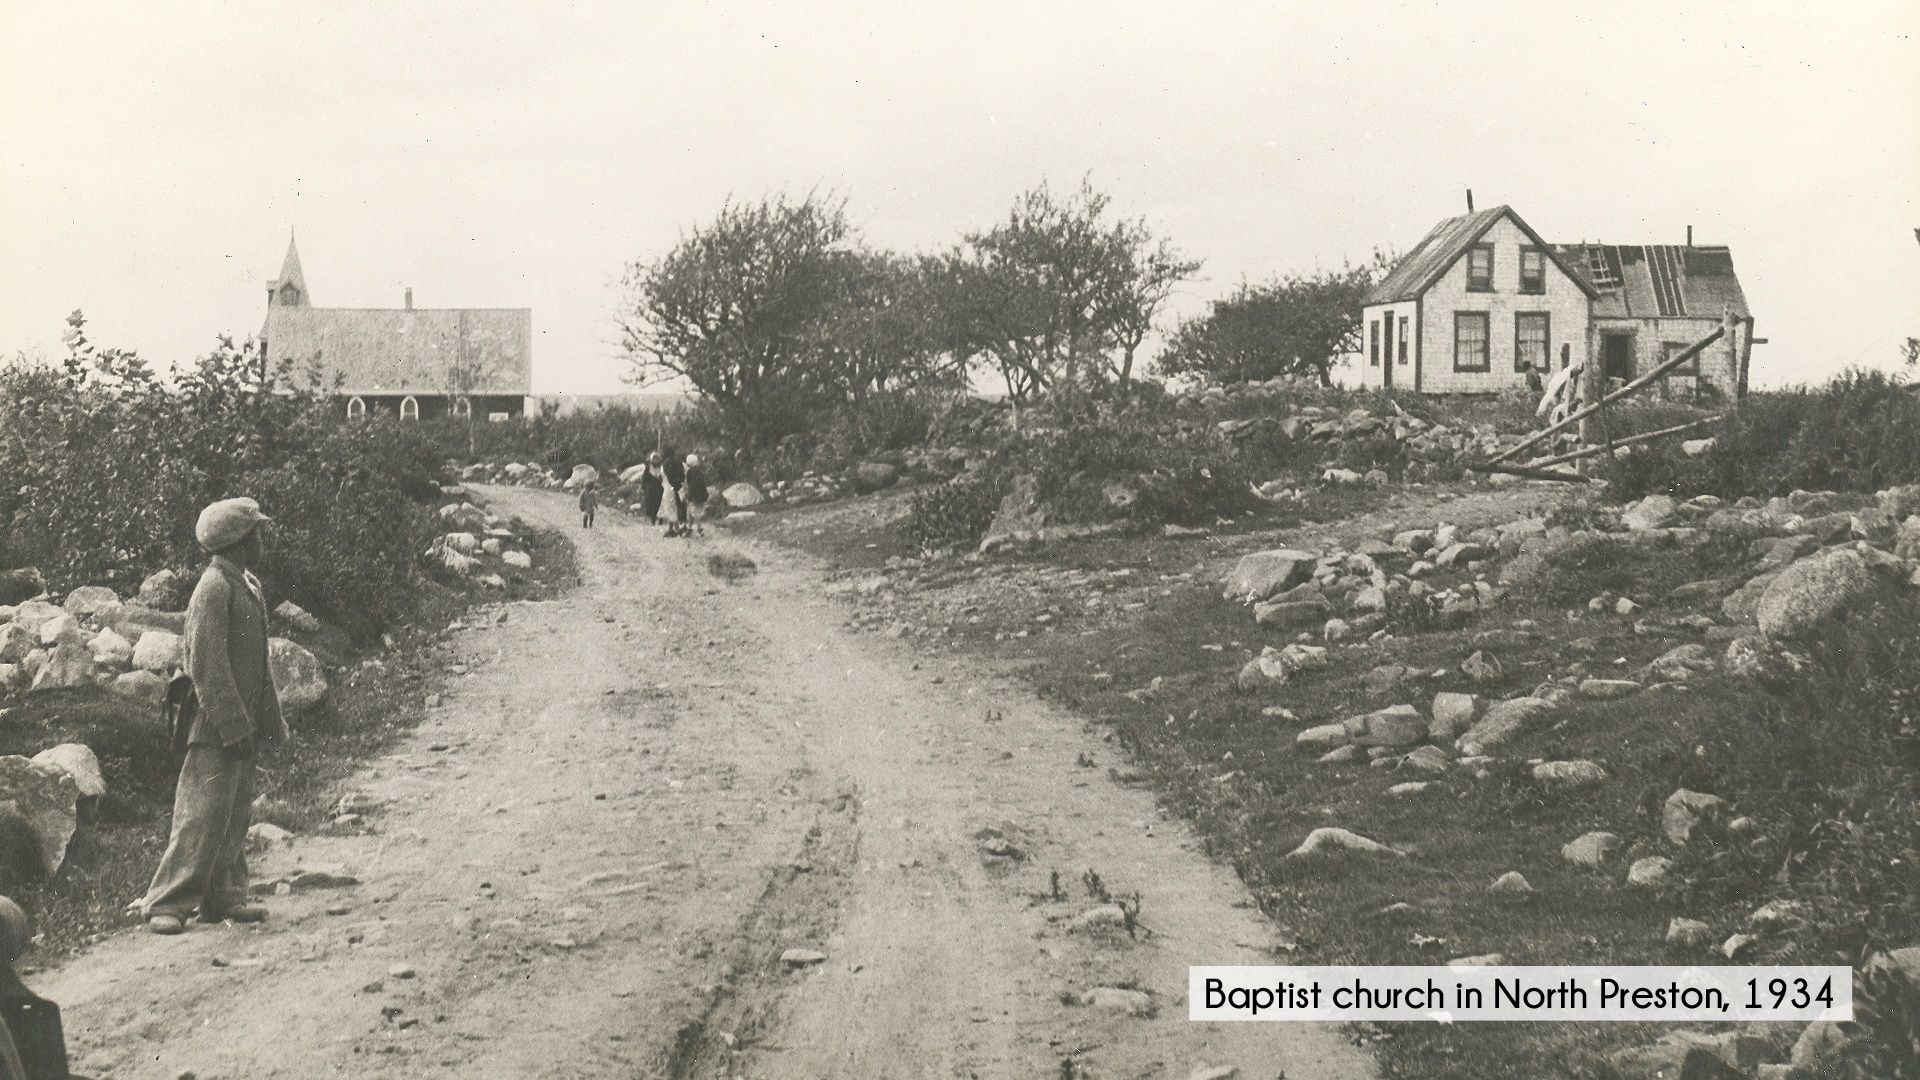 ImageCaption_6-1-2_BaptistChurch_1920x1080